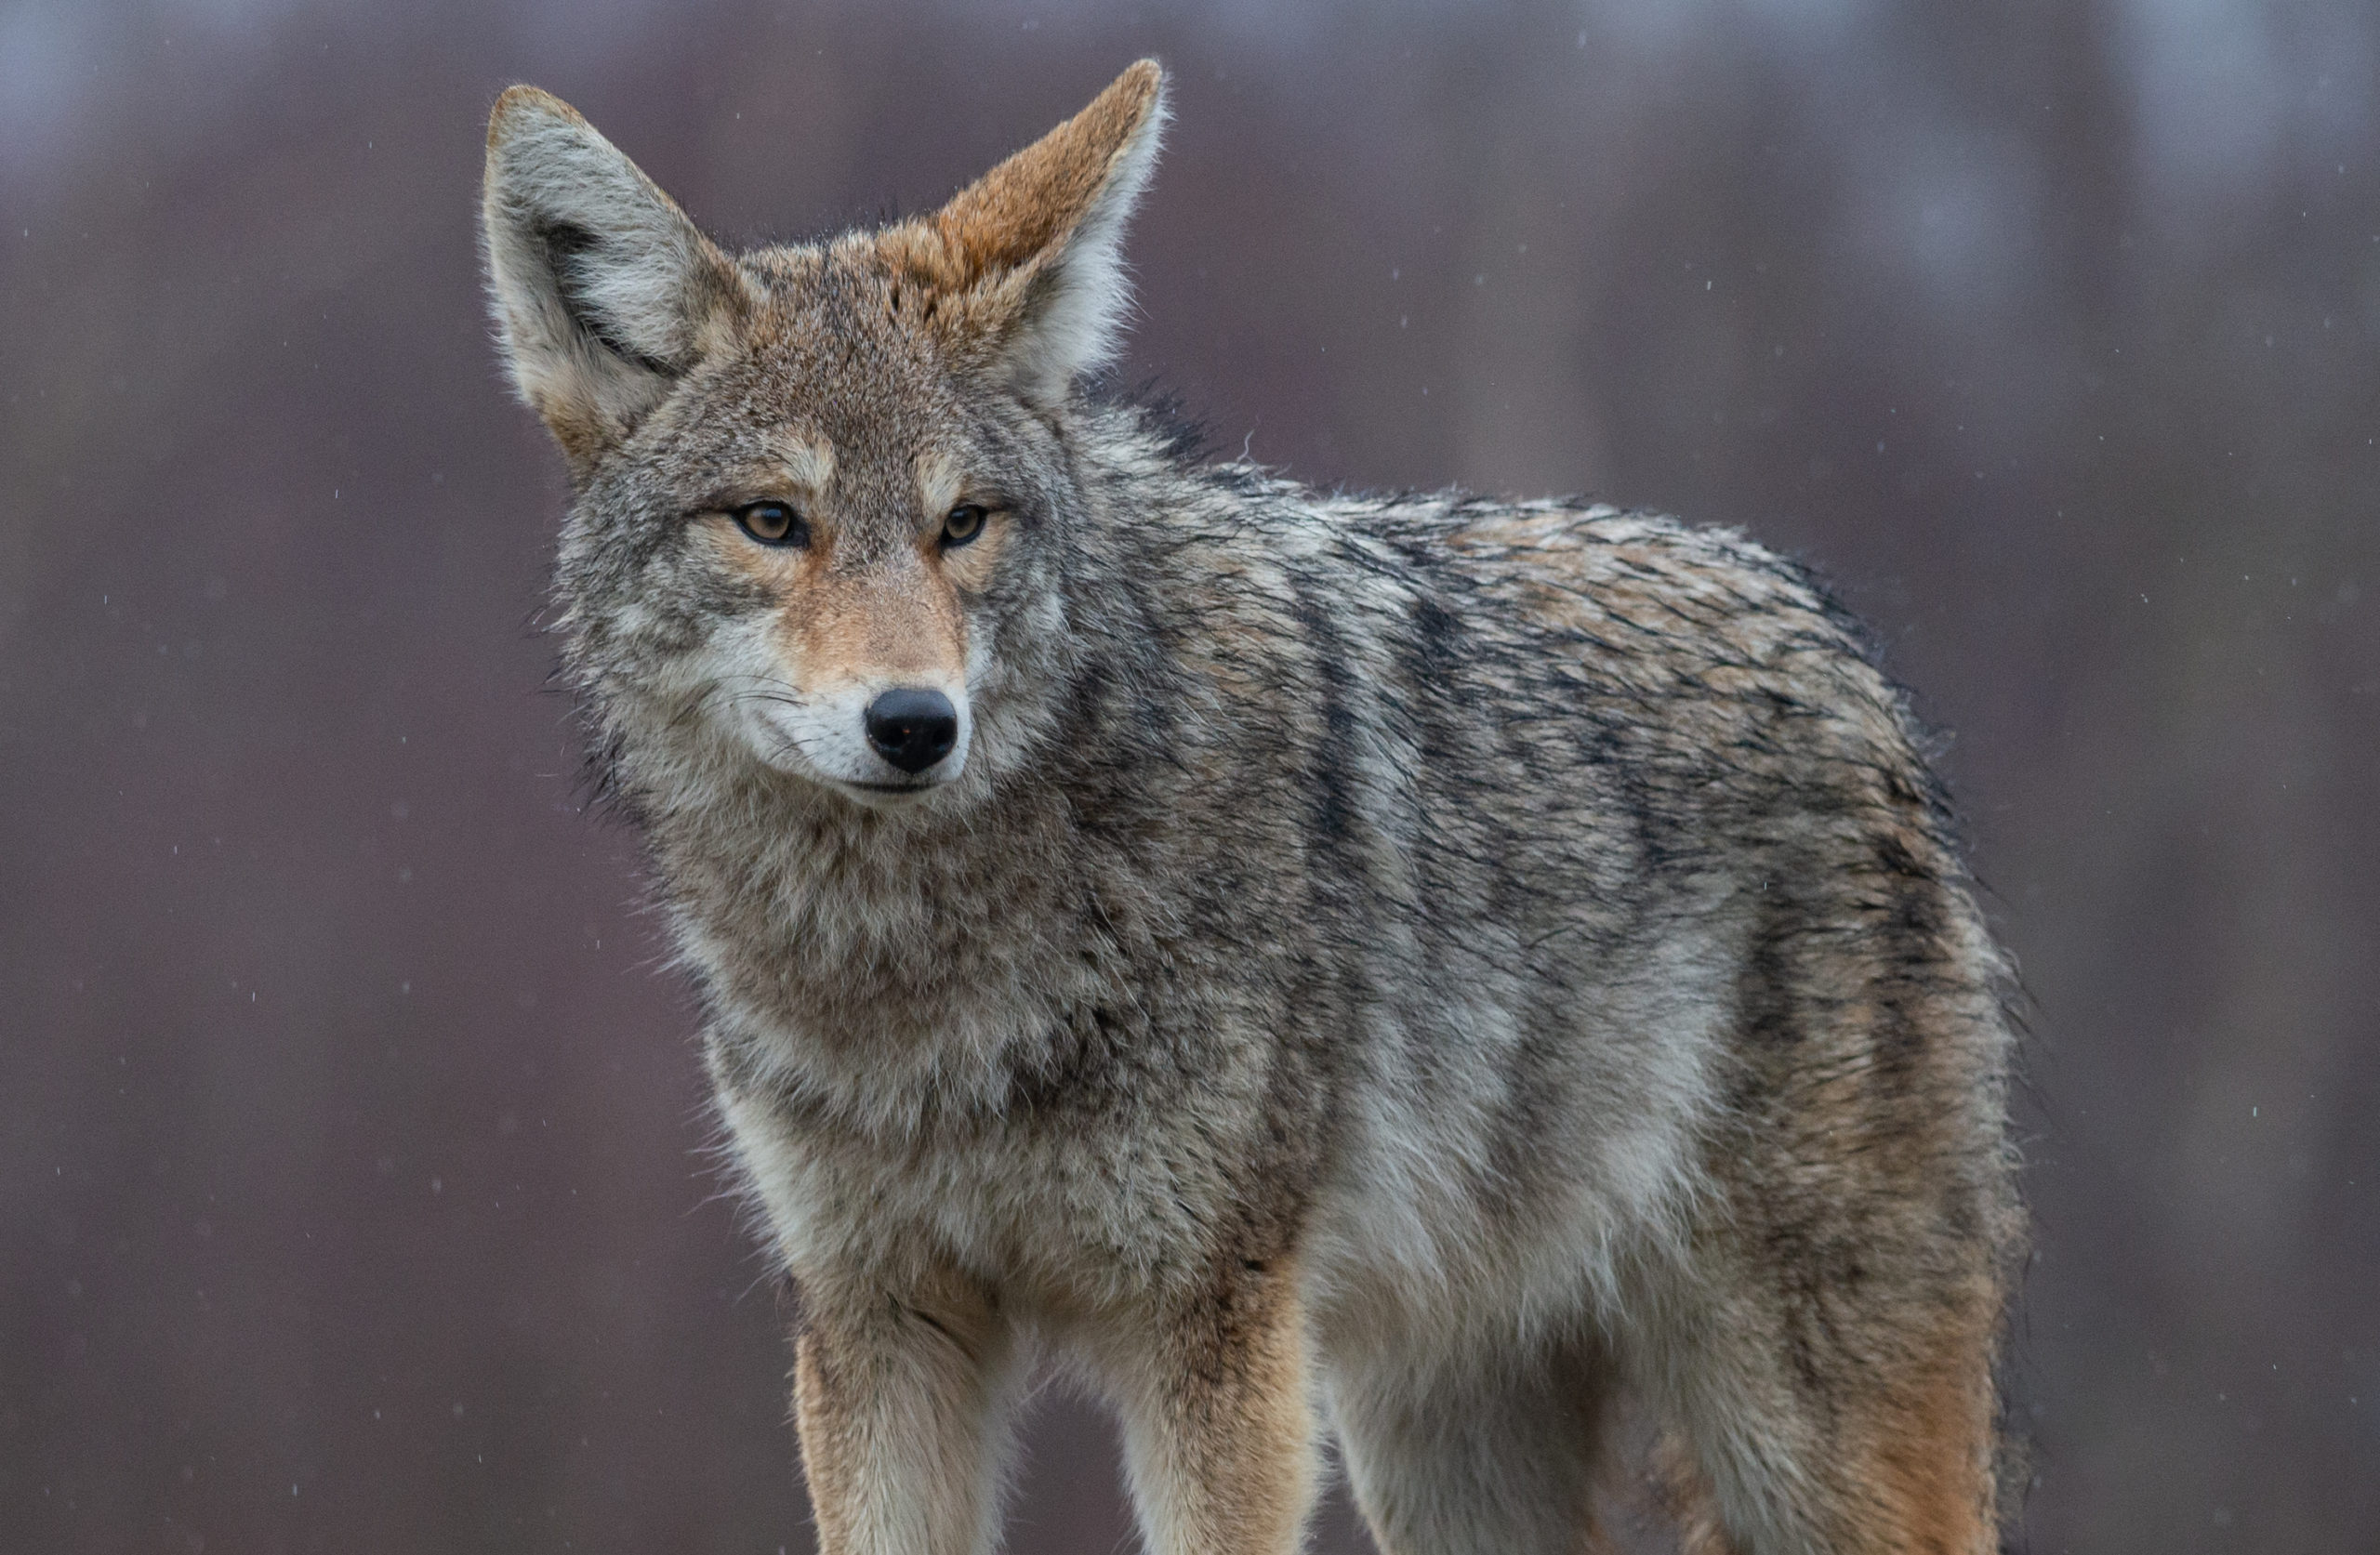 Image of a grey coyote in wilderness